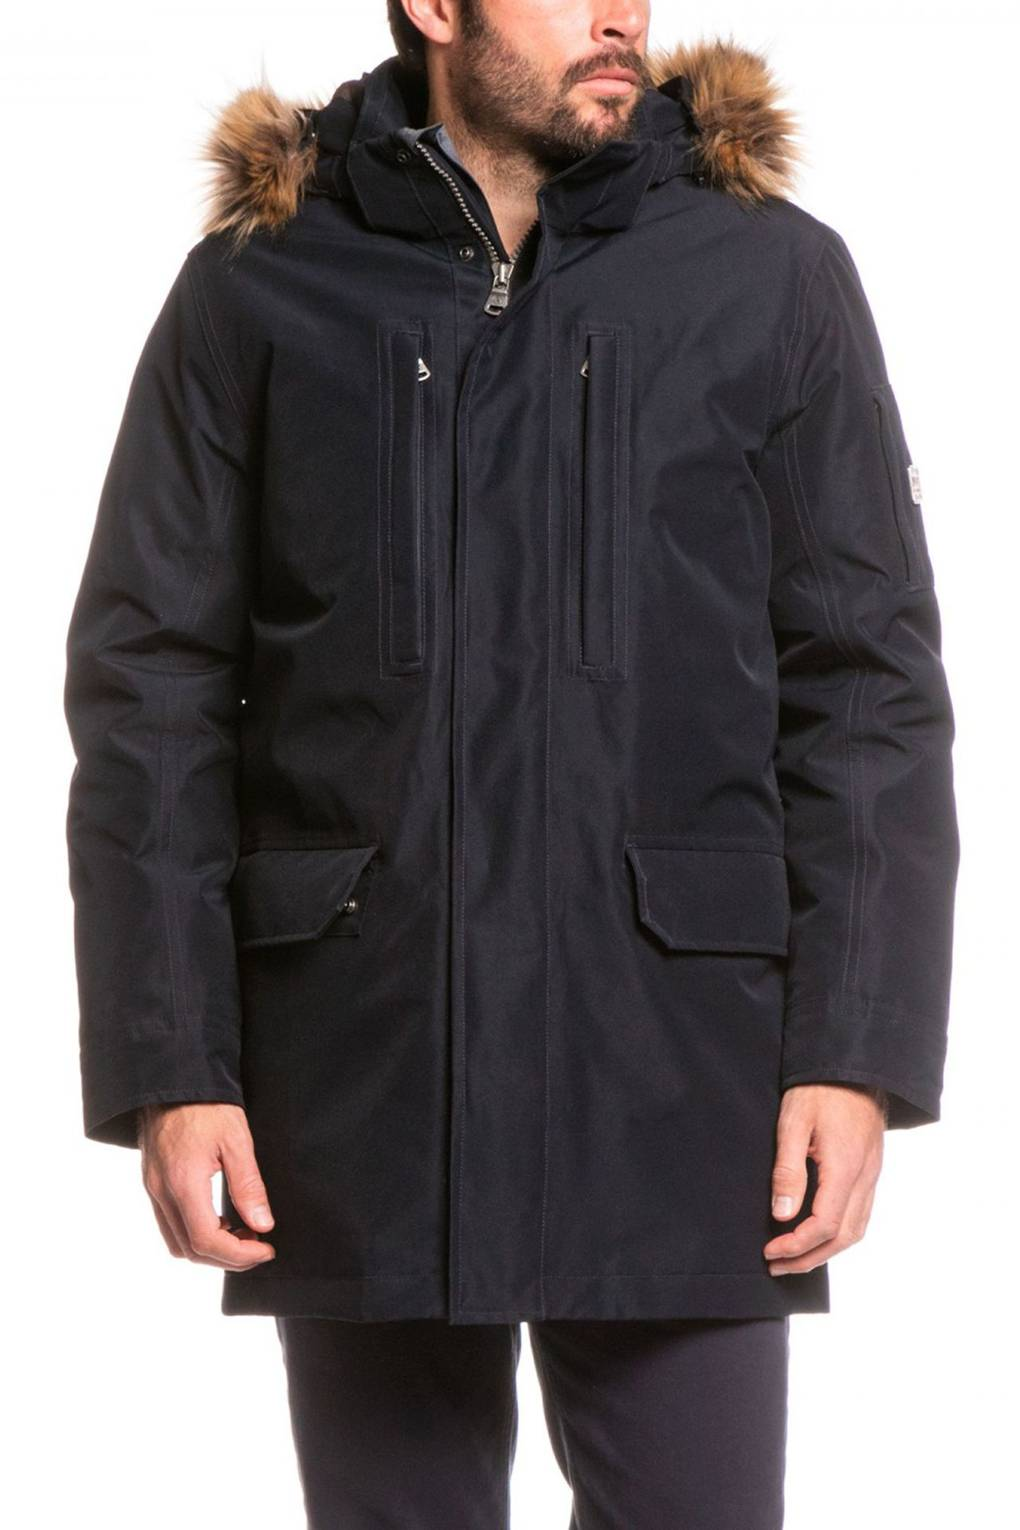 20 of the best parkas for men   British GQ